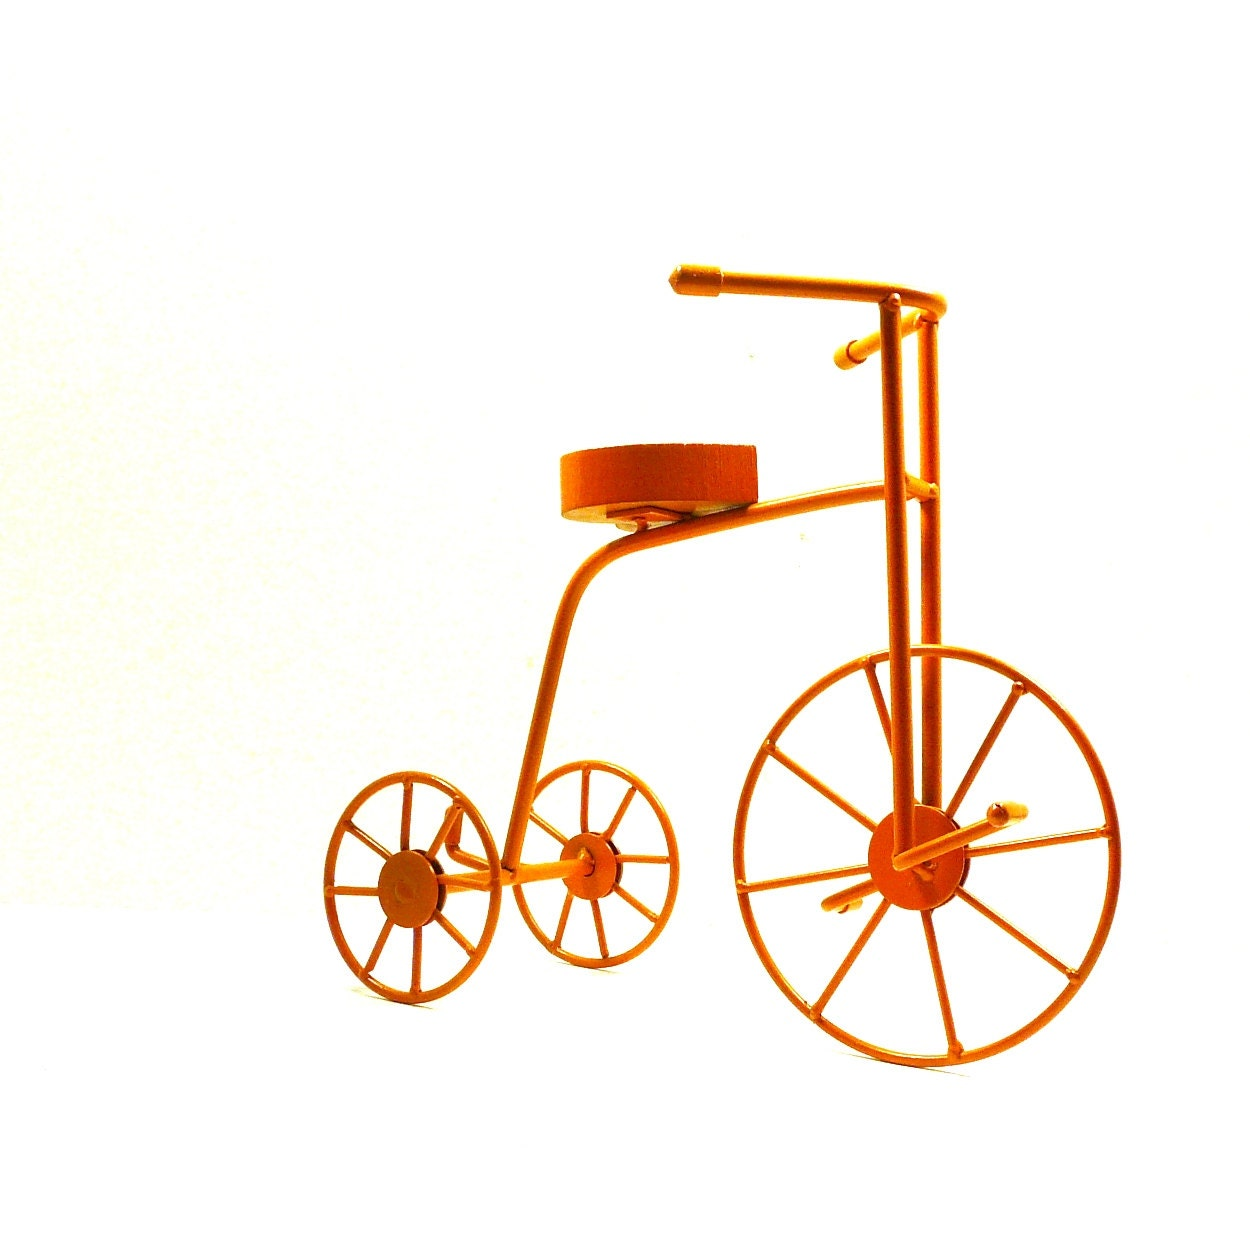 Metal bicycle frame orange mod decor home accessories by for Bicycle decorations home